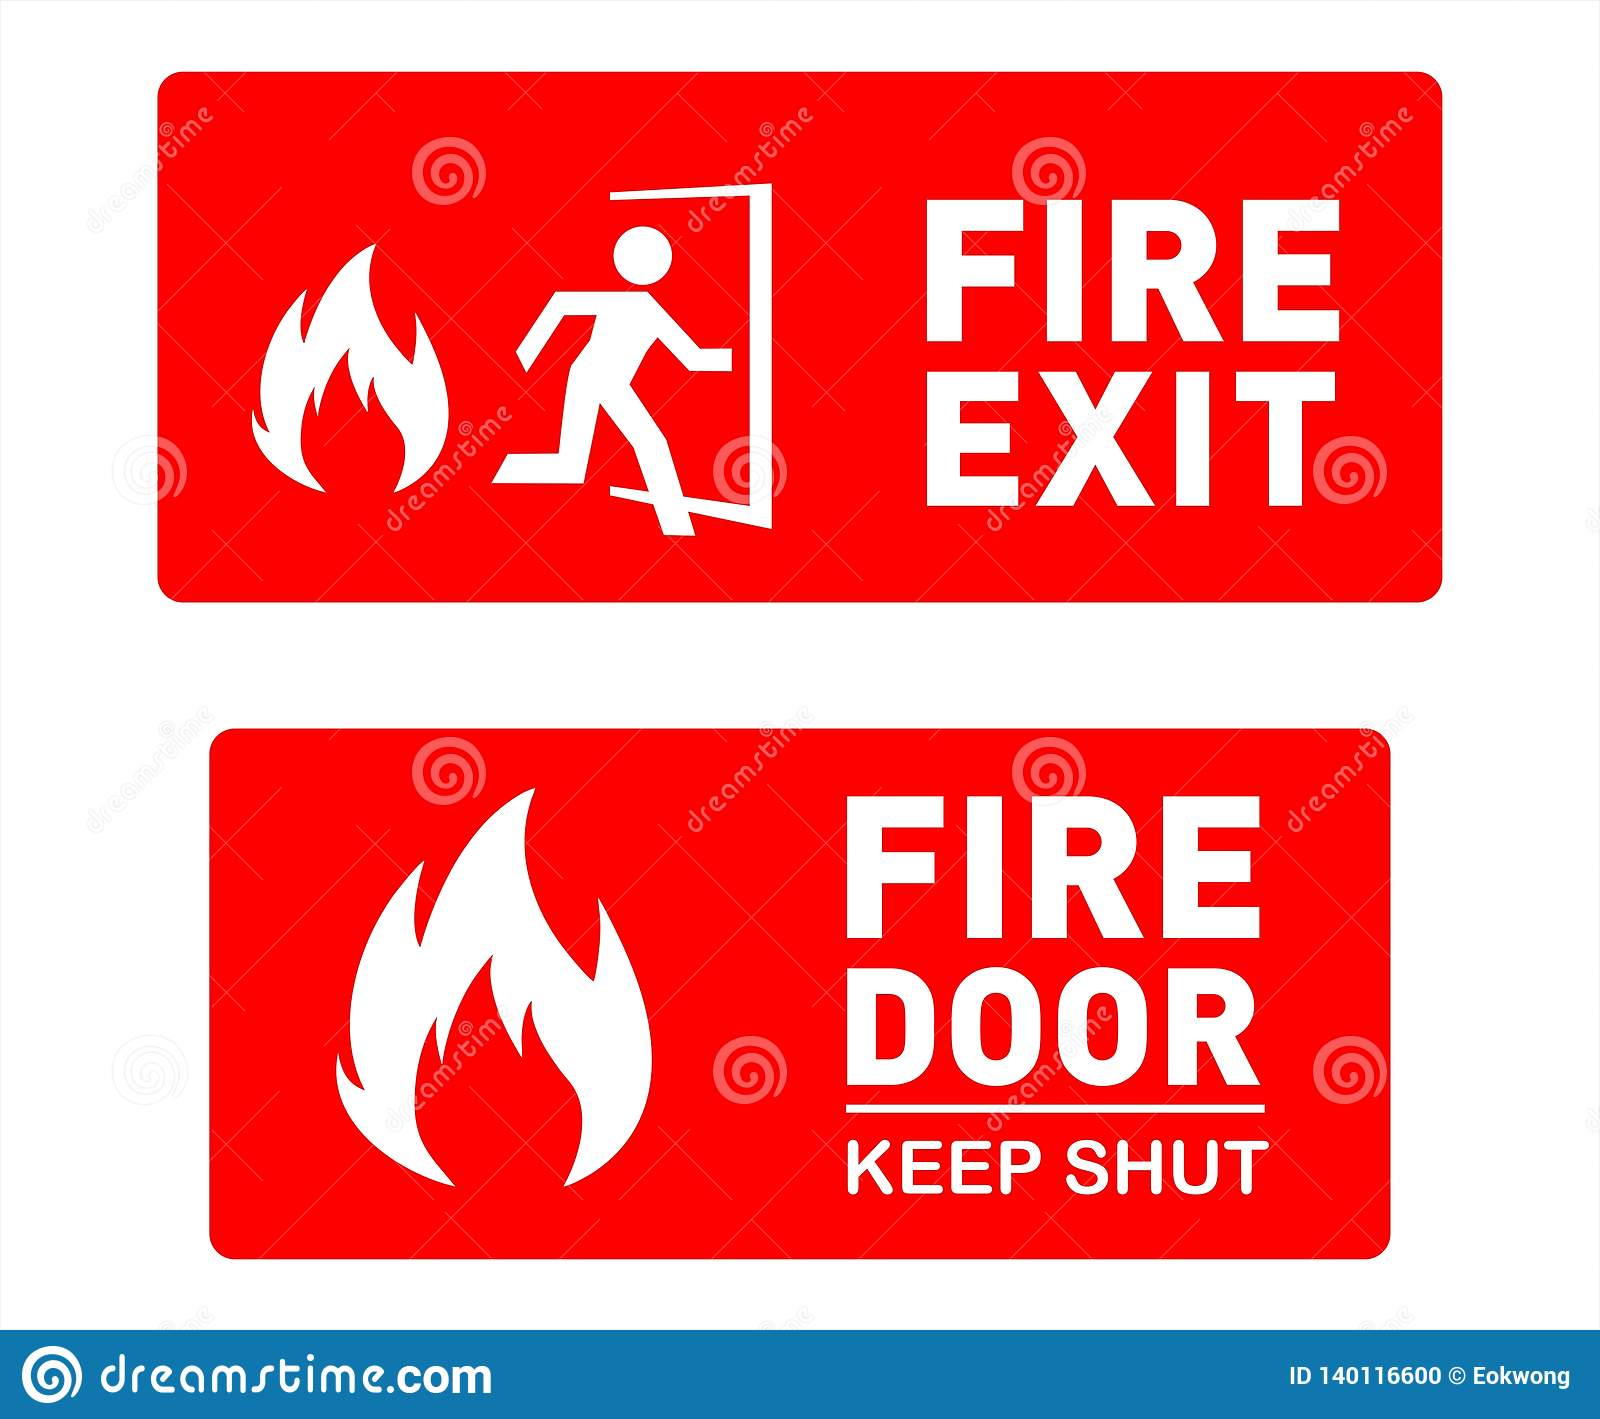 Fire Exit Sign Template Designs